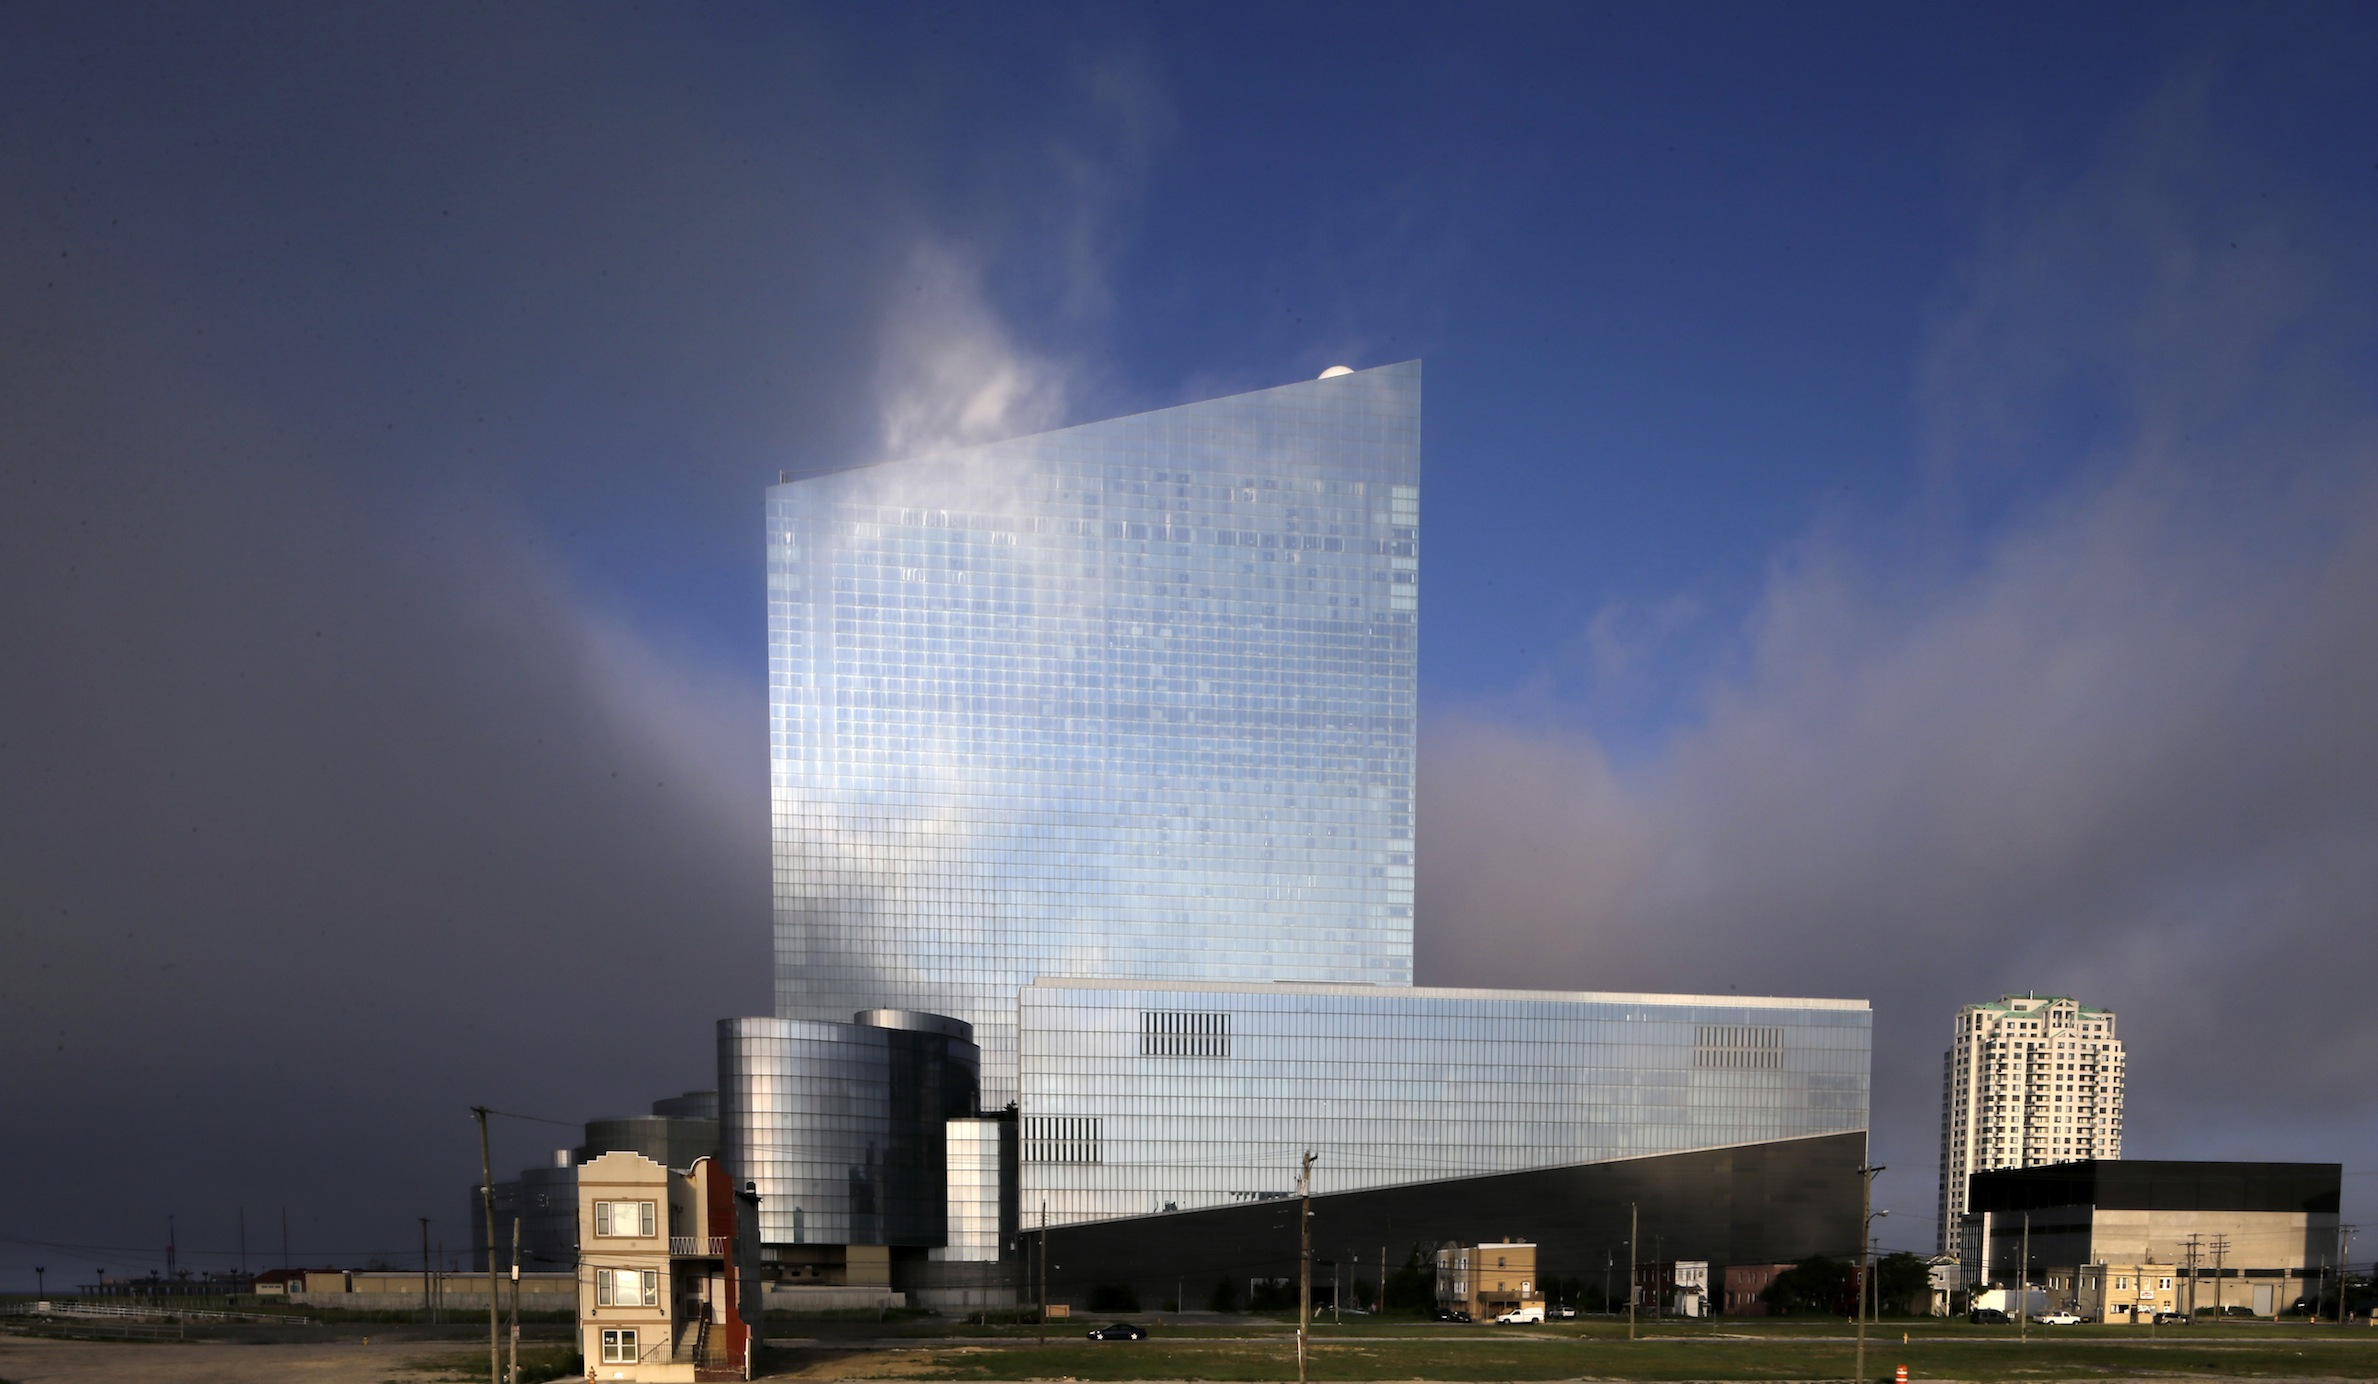 The last old home on a block, left, is seen near the Revel hotel and casino early Wednesday, July 23, 2014, in Atlantic City, N.J. (AP Photo/Mel Evans)